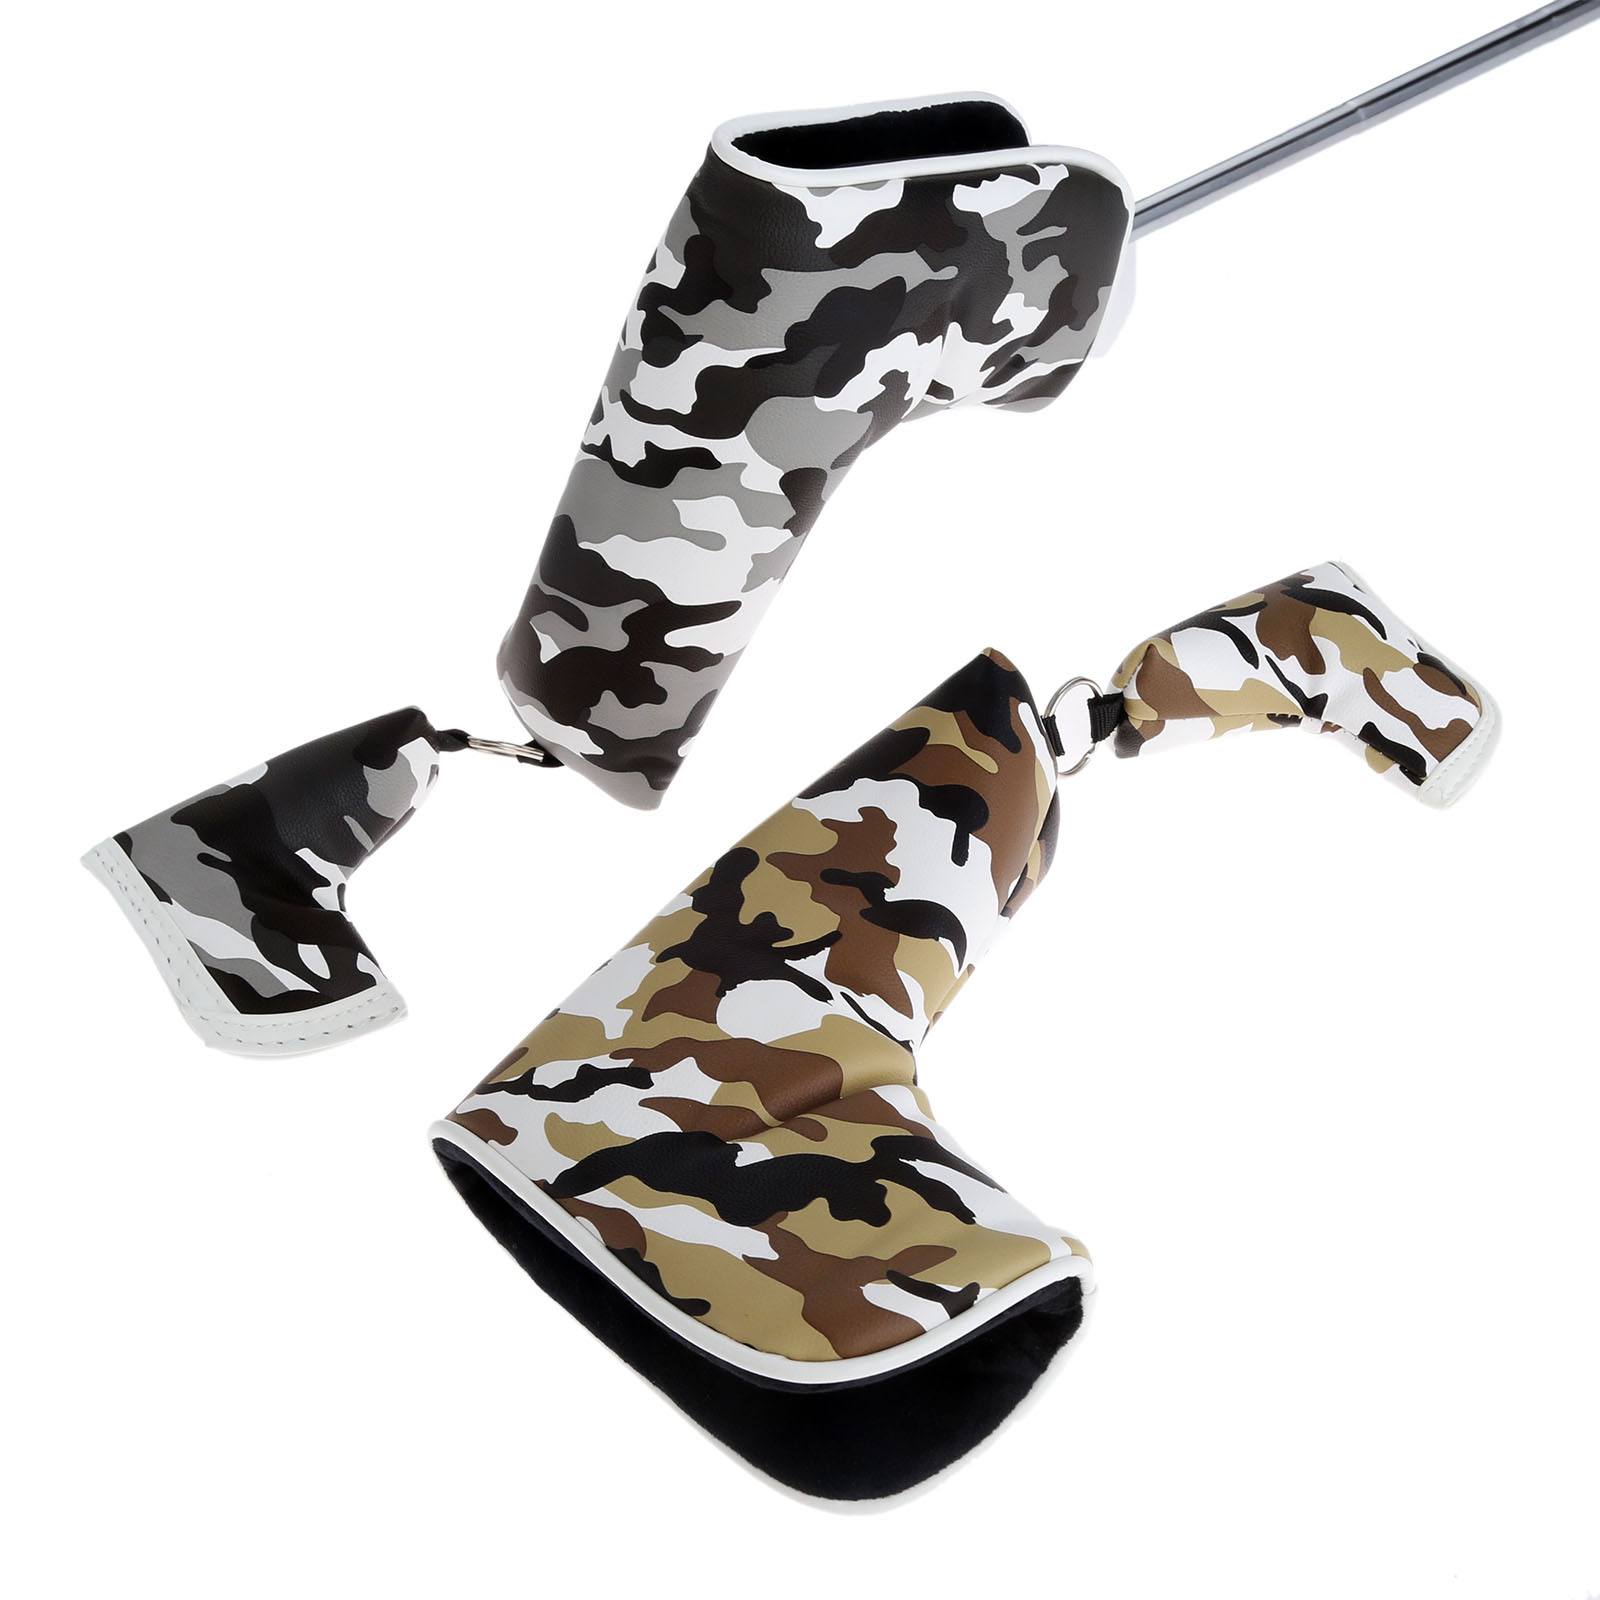 Universal Golf Blade Putter Club Head Cover Bag Camouflage Pattern Magnetic Head Covers Waterproof PU Headcover Protector Set